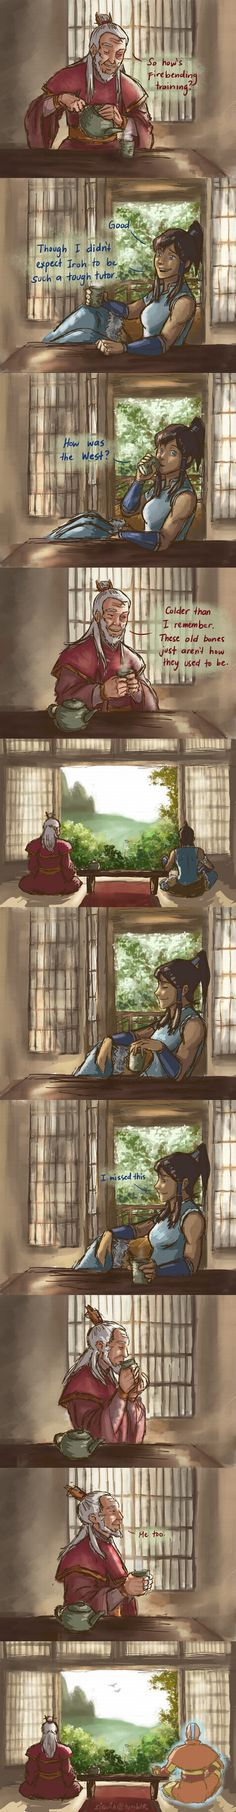 I missed this ... Avatar Kora having tea with Zuko  ≈Avatar The Last Airbender≈ ≈Legend of Korra≈